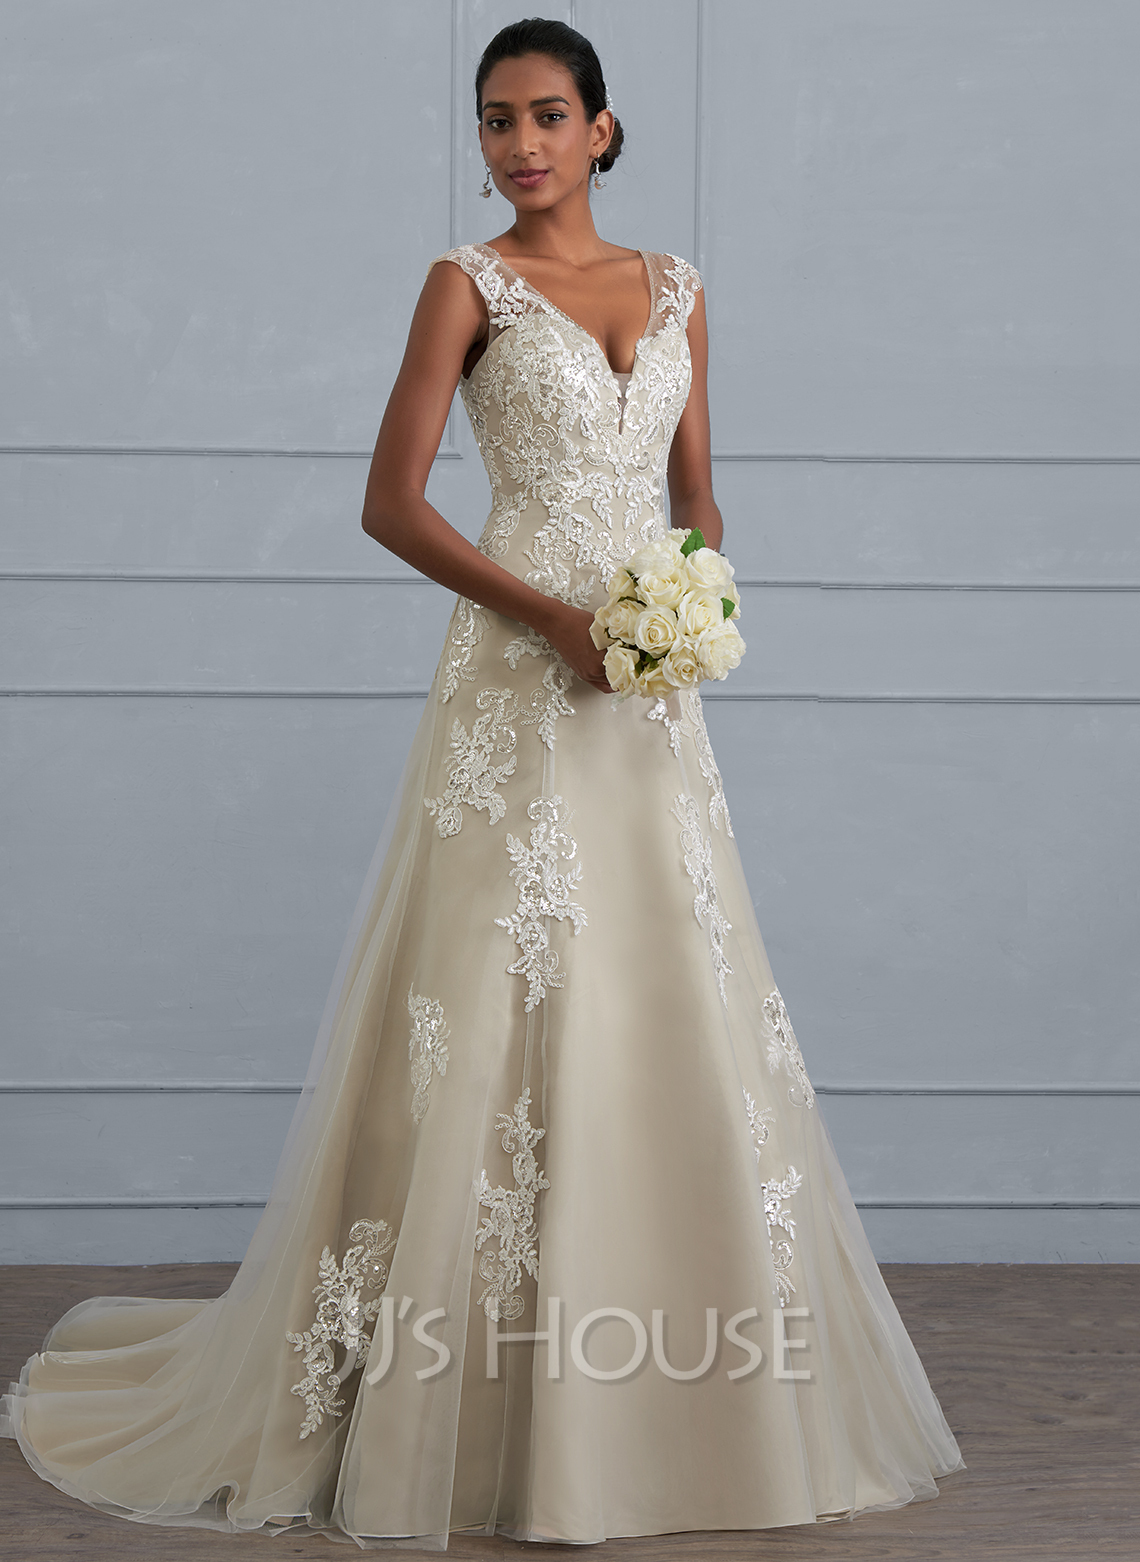 3f6557f82b0 A-Line Princess V-neck Court Train Tulle Lace Wedding Dress With Beading.  Loading zoom